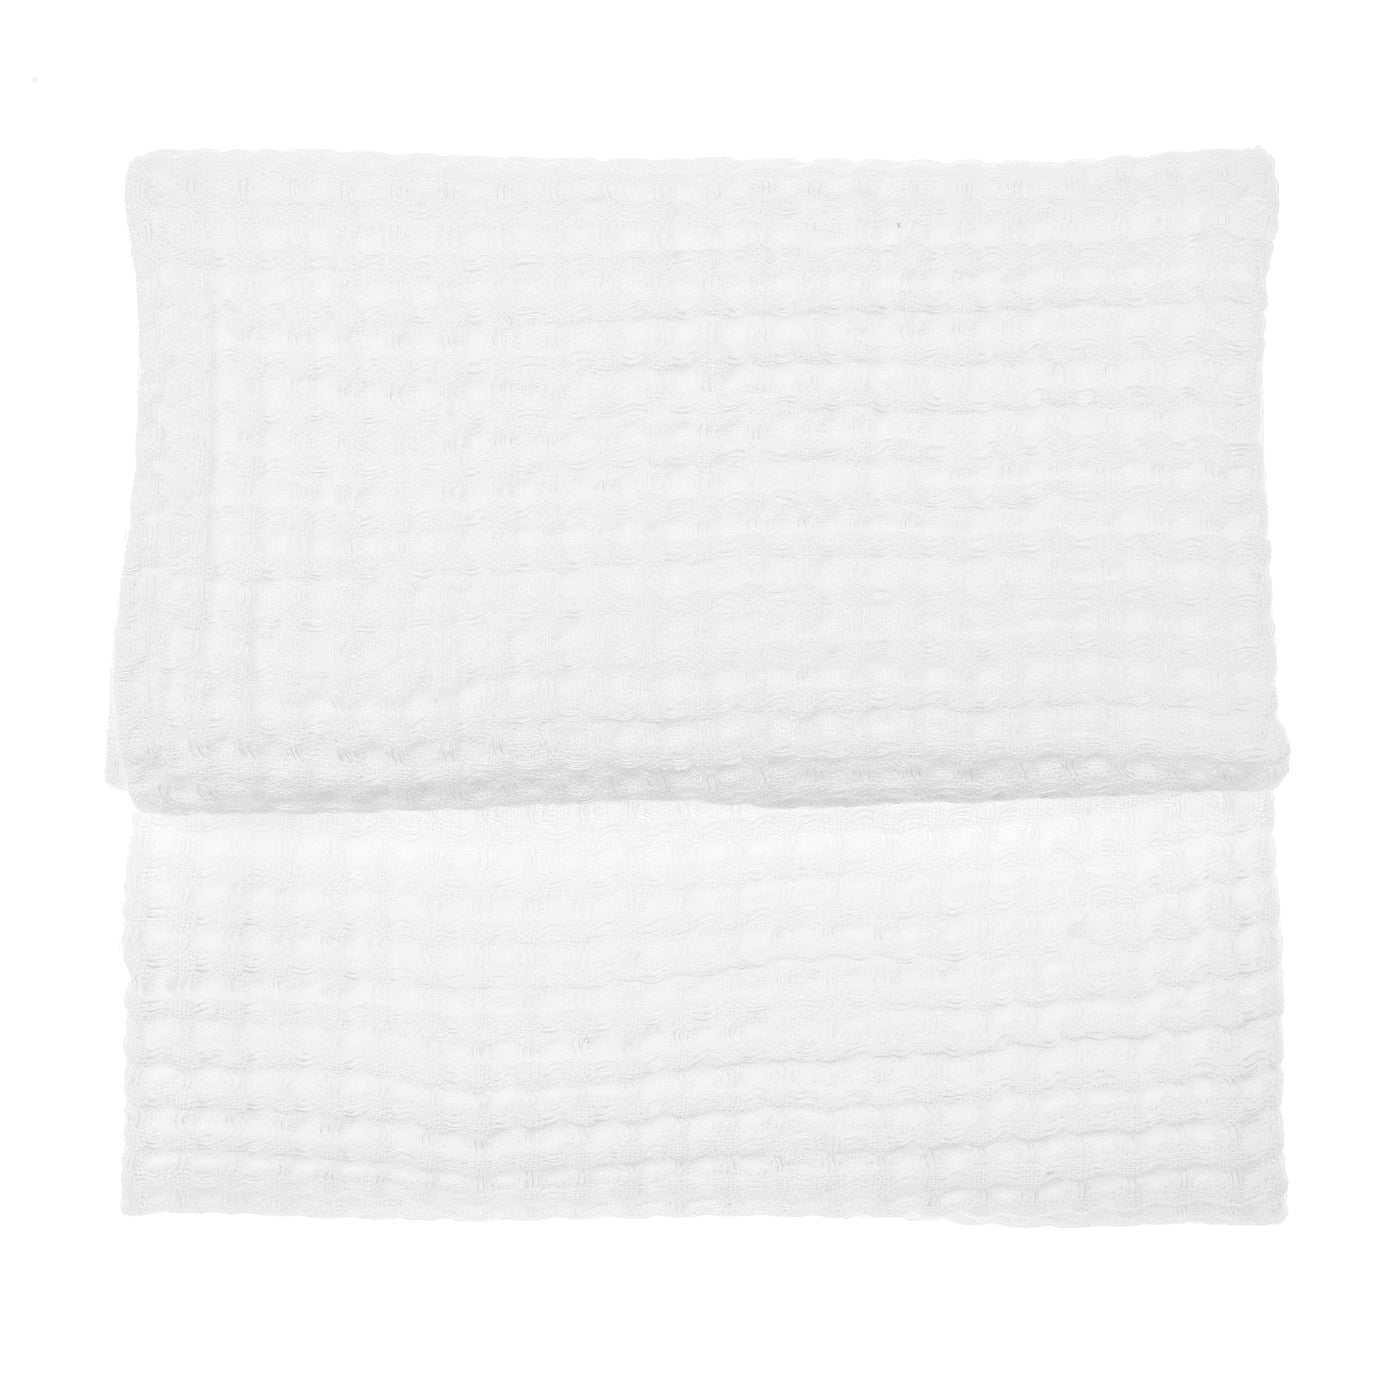 Swan White Small Linen Towel